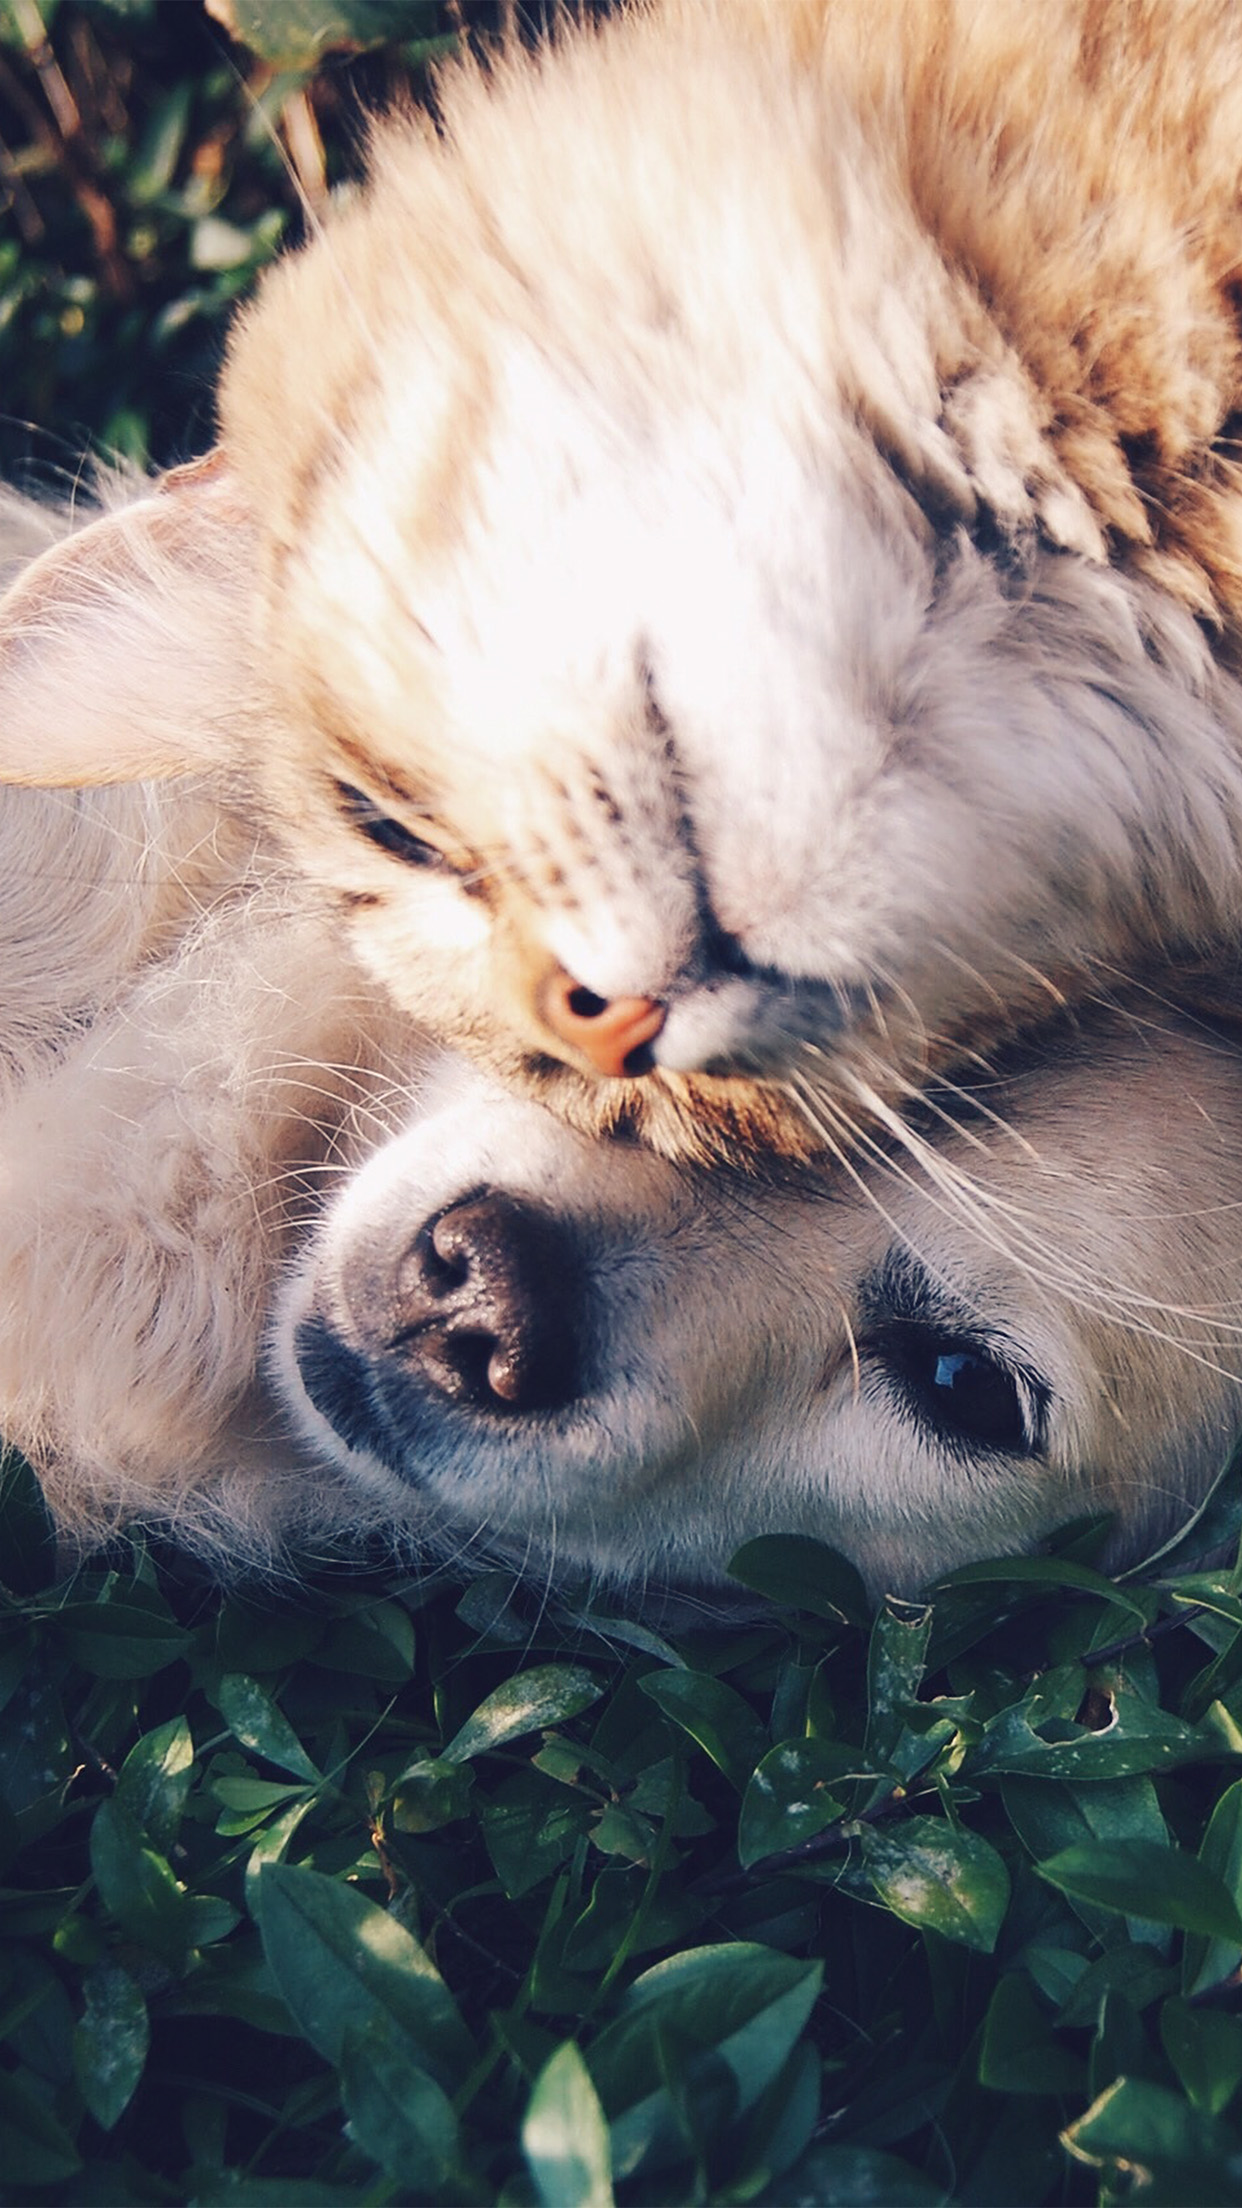 Cat And Dog Animal Love Nature Pure Android wallpaper